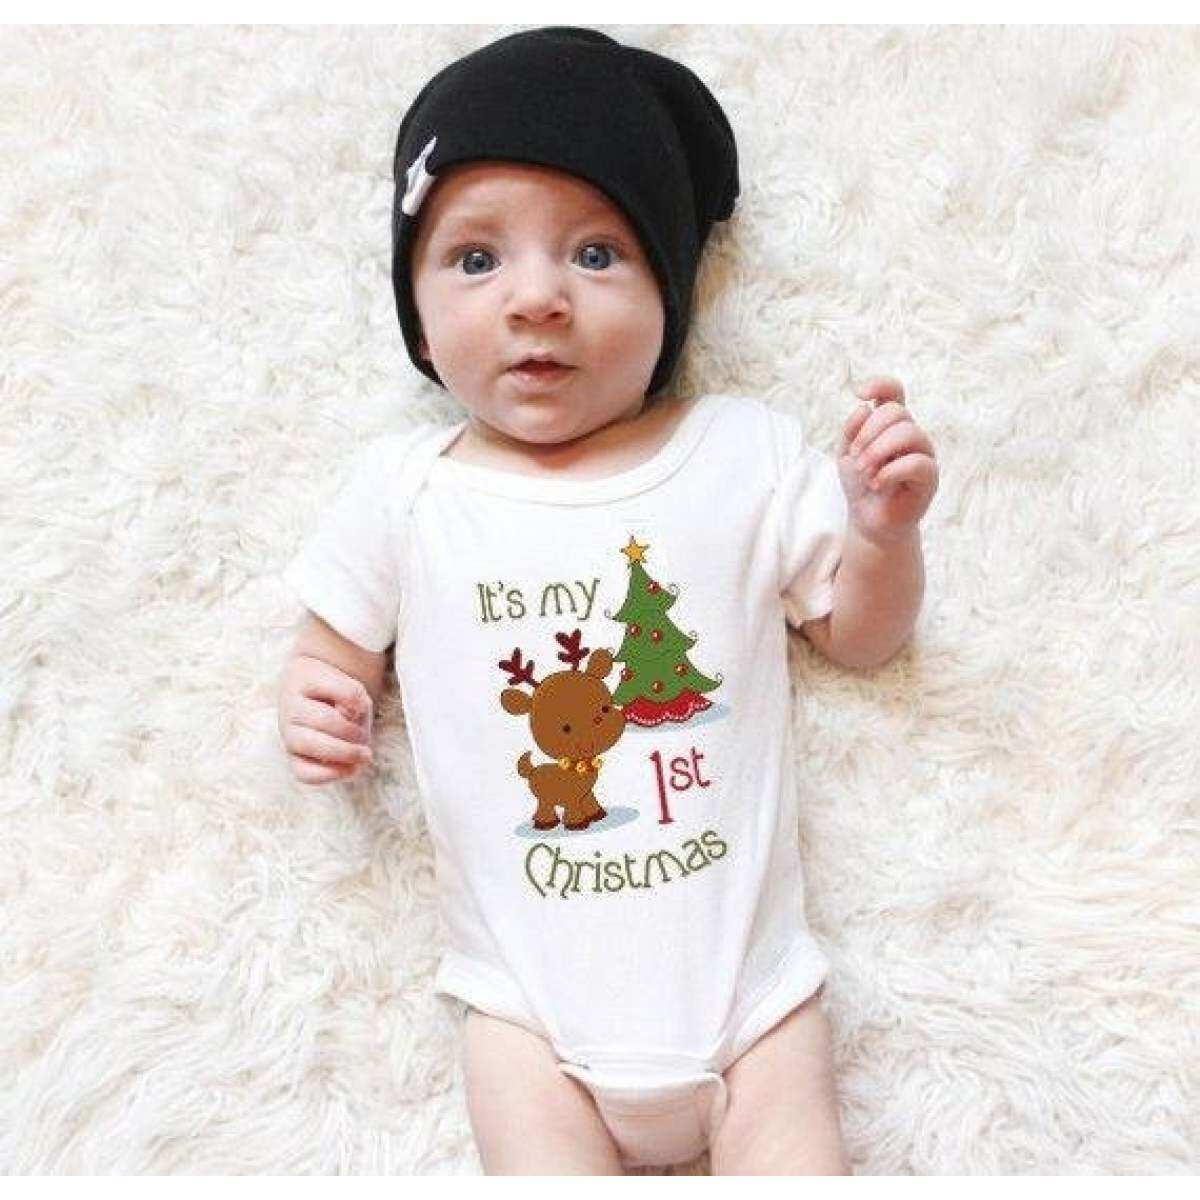 9488614b1 Baby Boys Camisoles for sale - Undershirts for Baby Boys Online ...